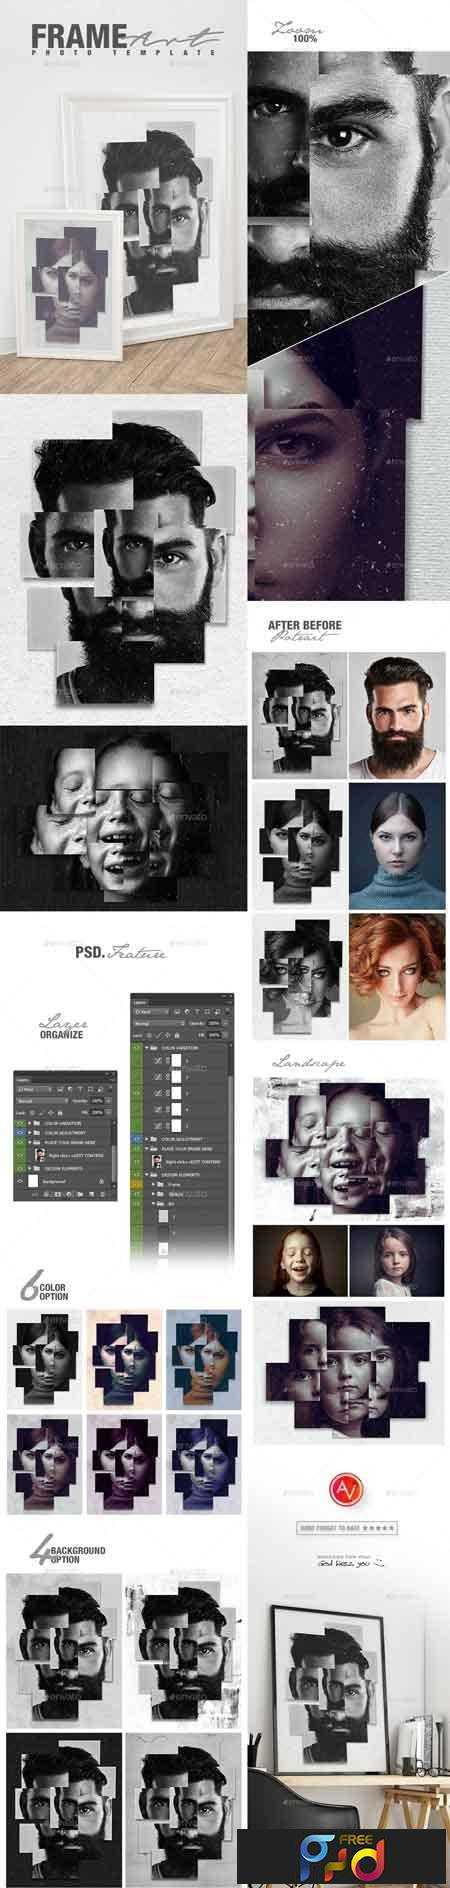 freepsdvn-com_1474822741_frame-art-photo-template-17545174